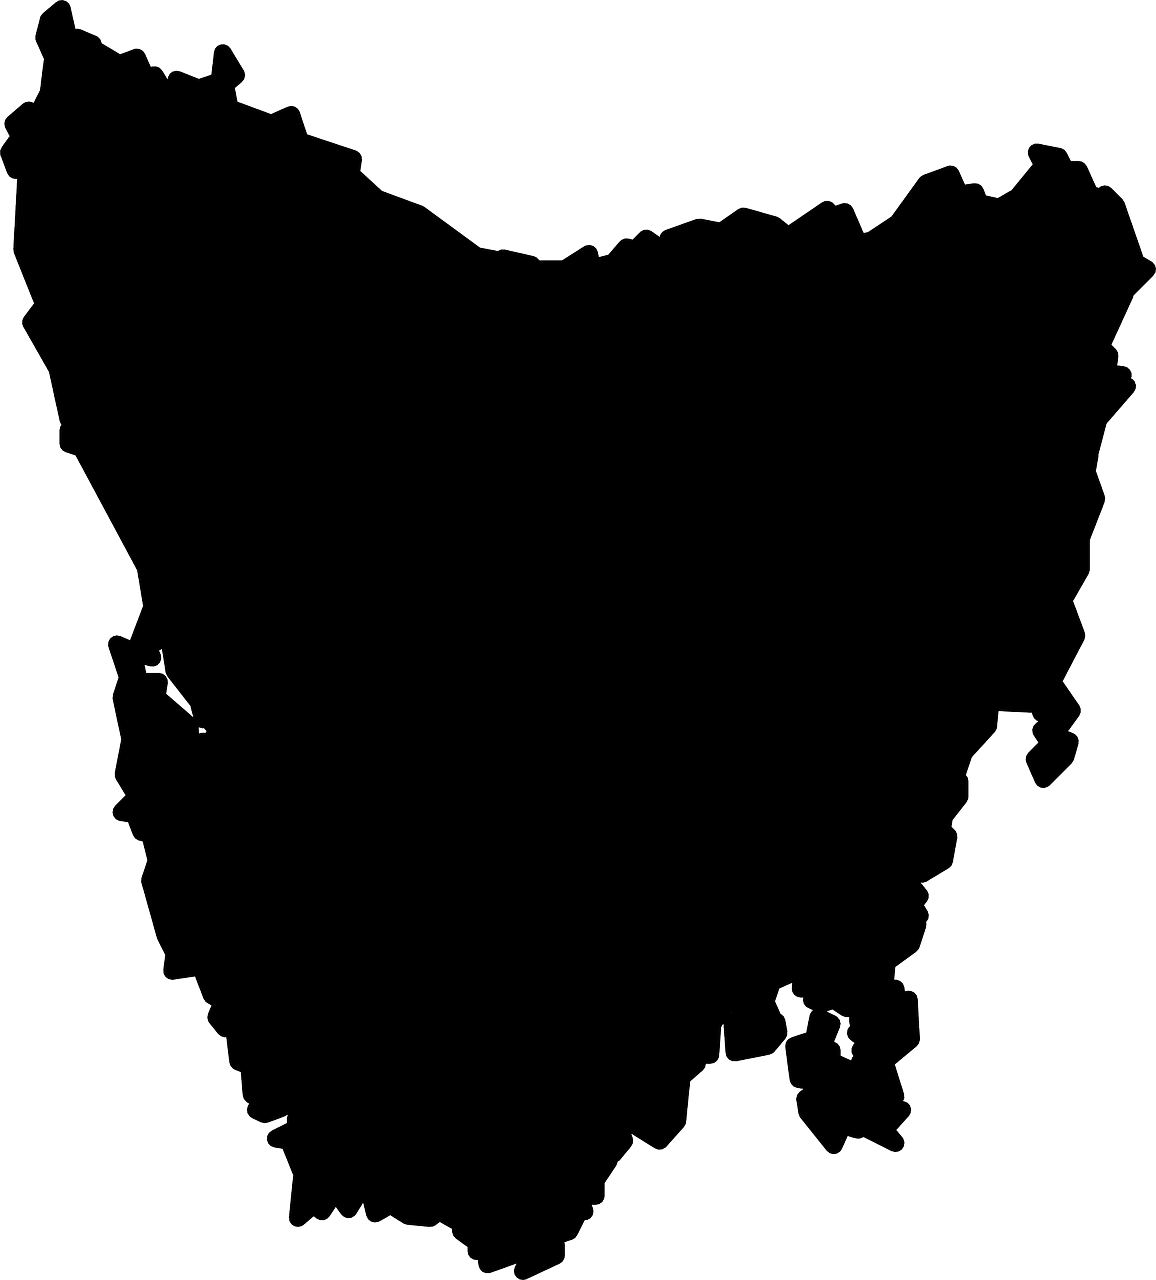 tasmania map australia free photo